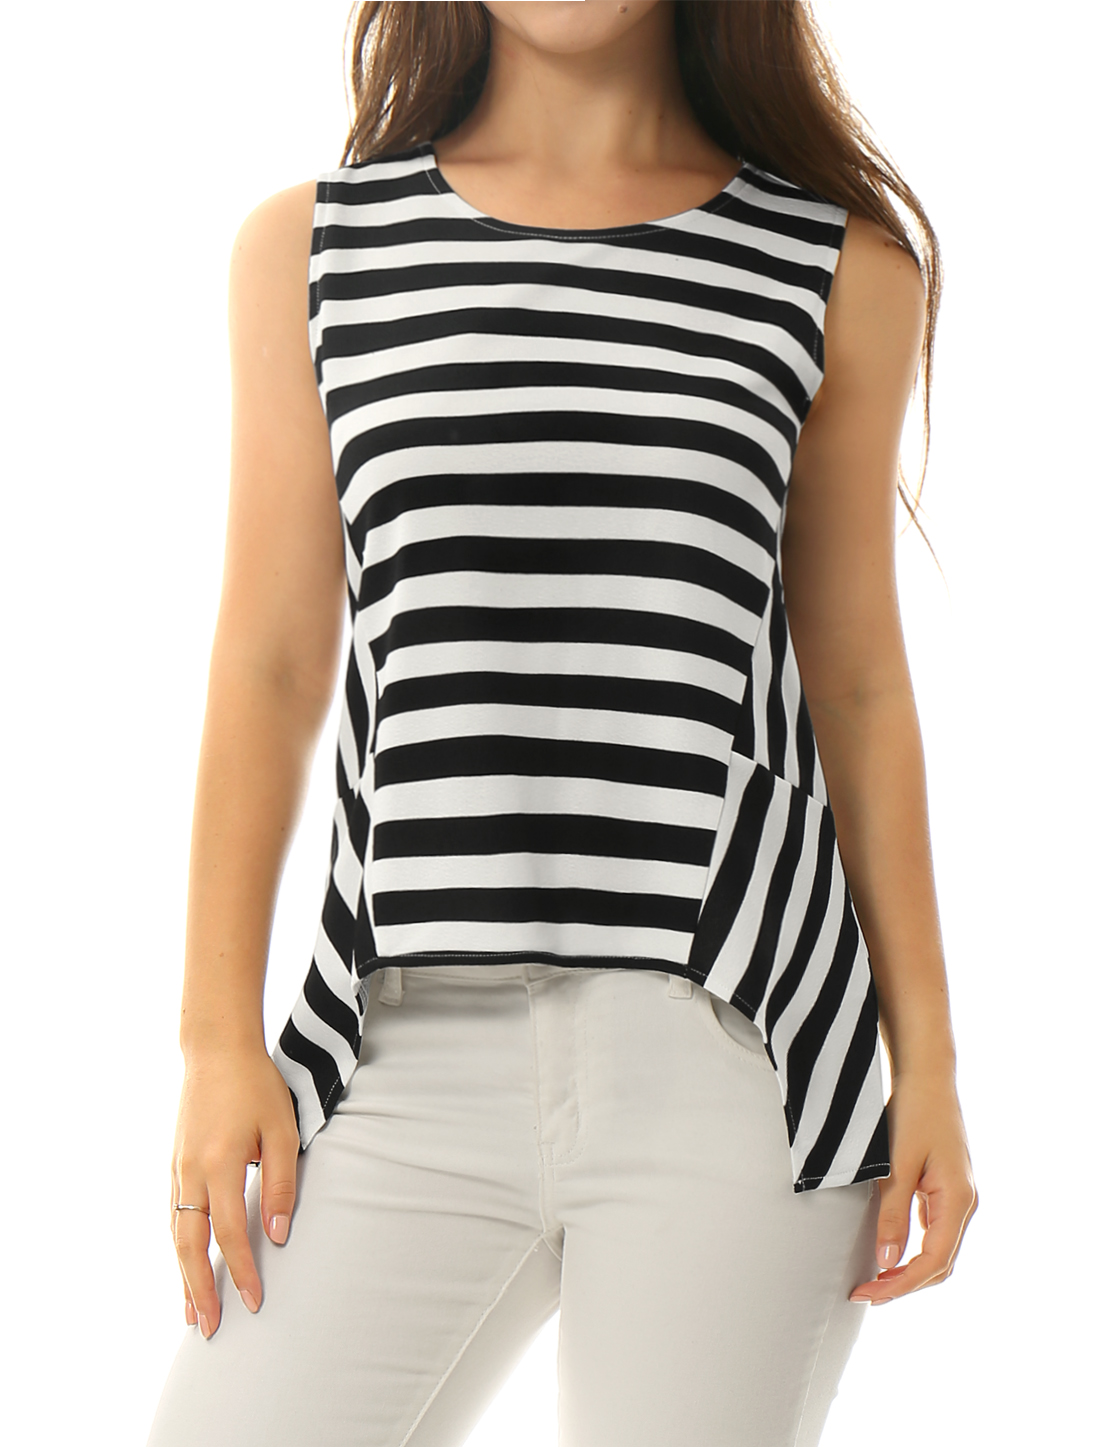 Women Stripes Asymmetric Hem Round Neck Tank Top White Black S